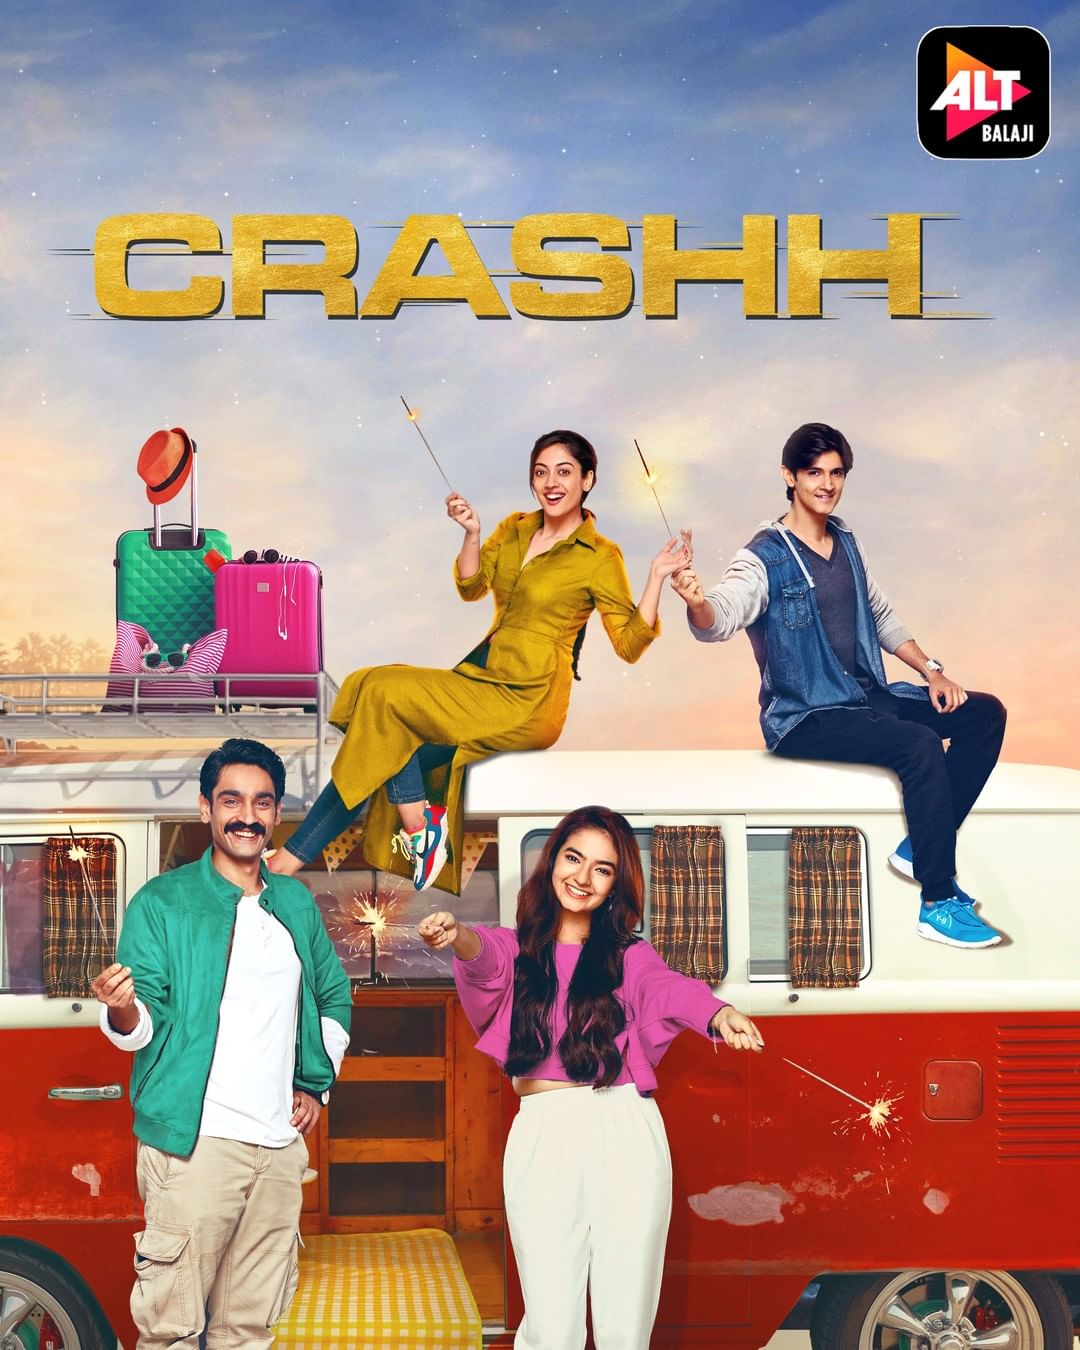 Crashh S01 2021 Hindi ALTBalaji Original Complete Web Series 650MB HDRip 480p Download